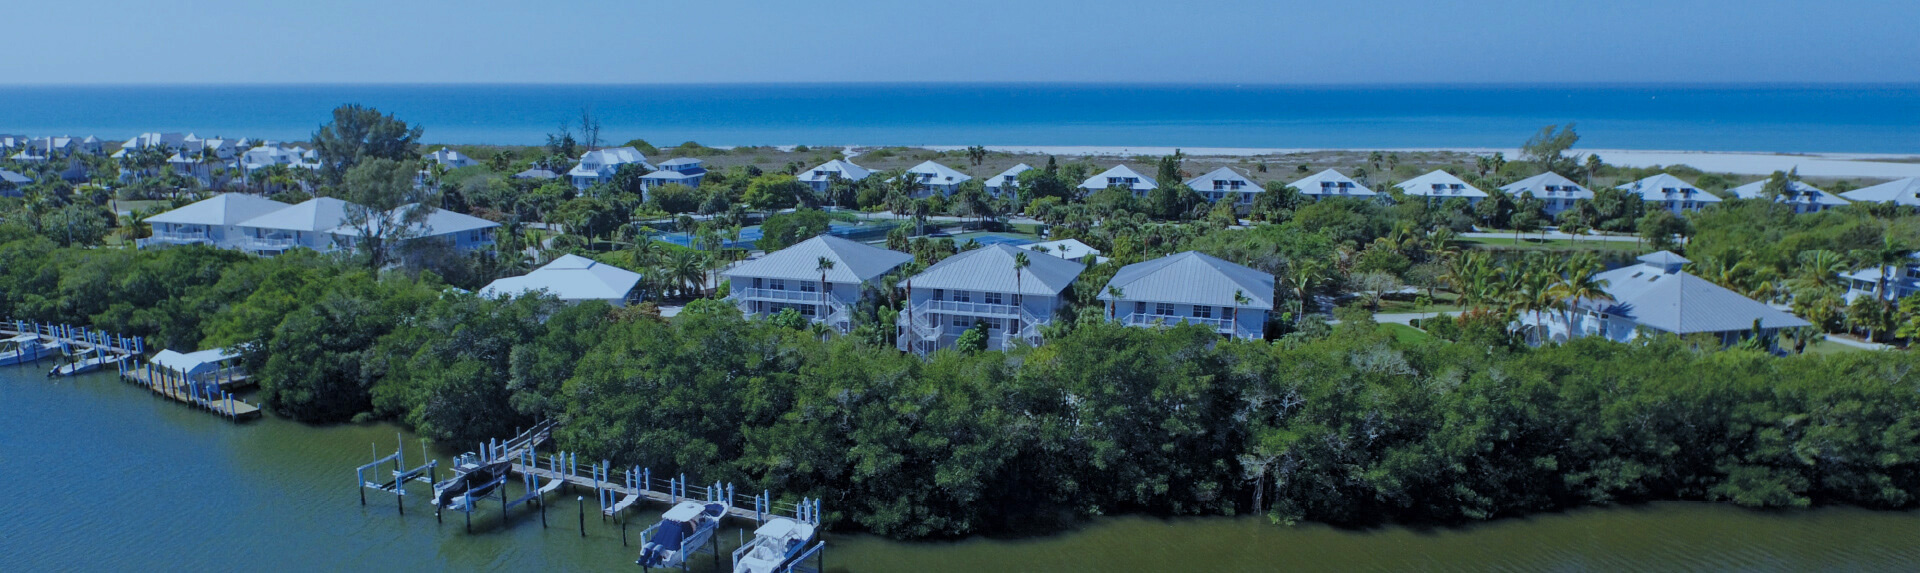 palm-island-properties-listing-your-property